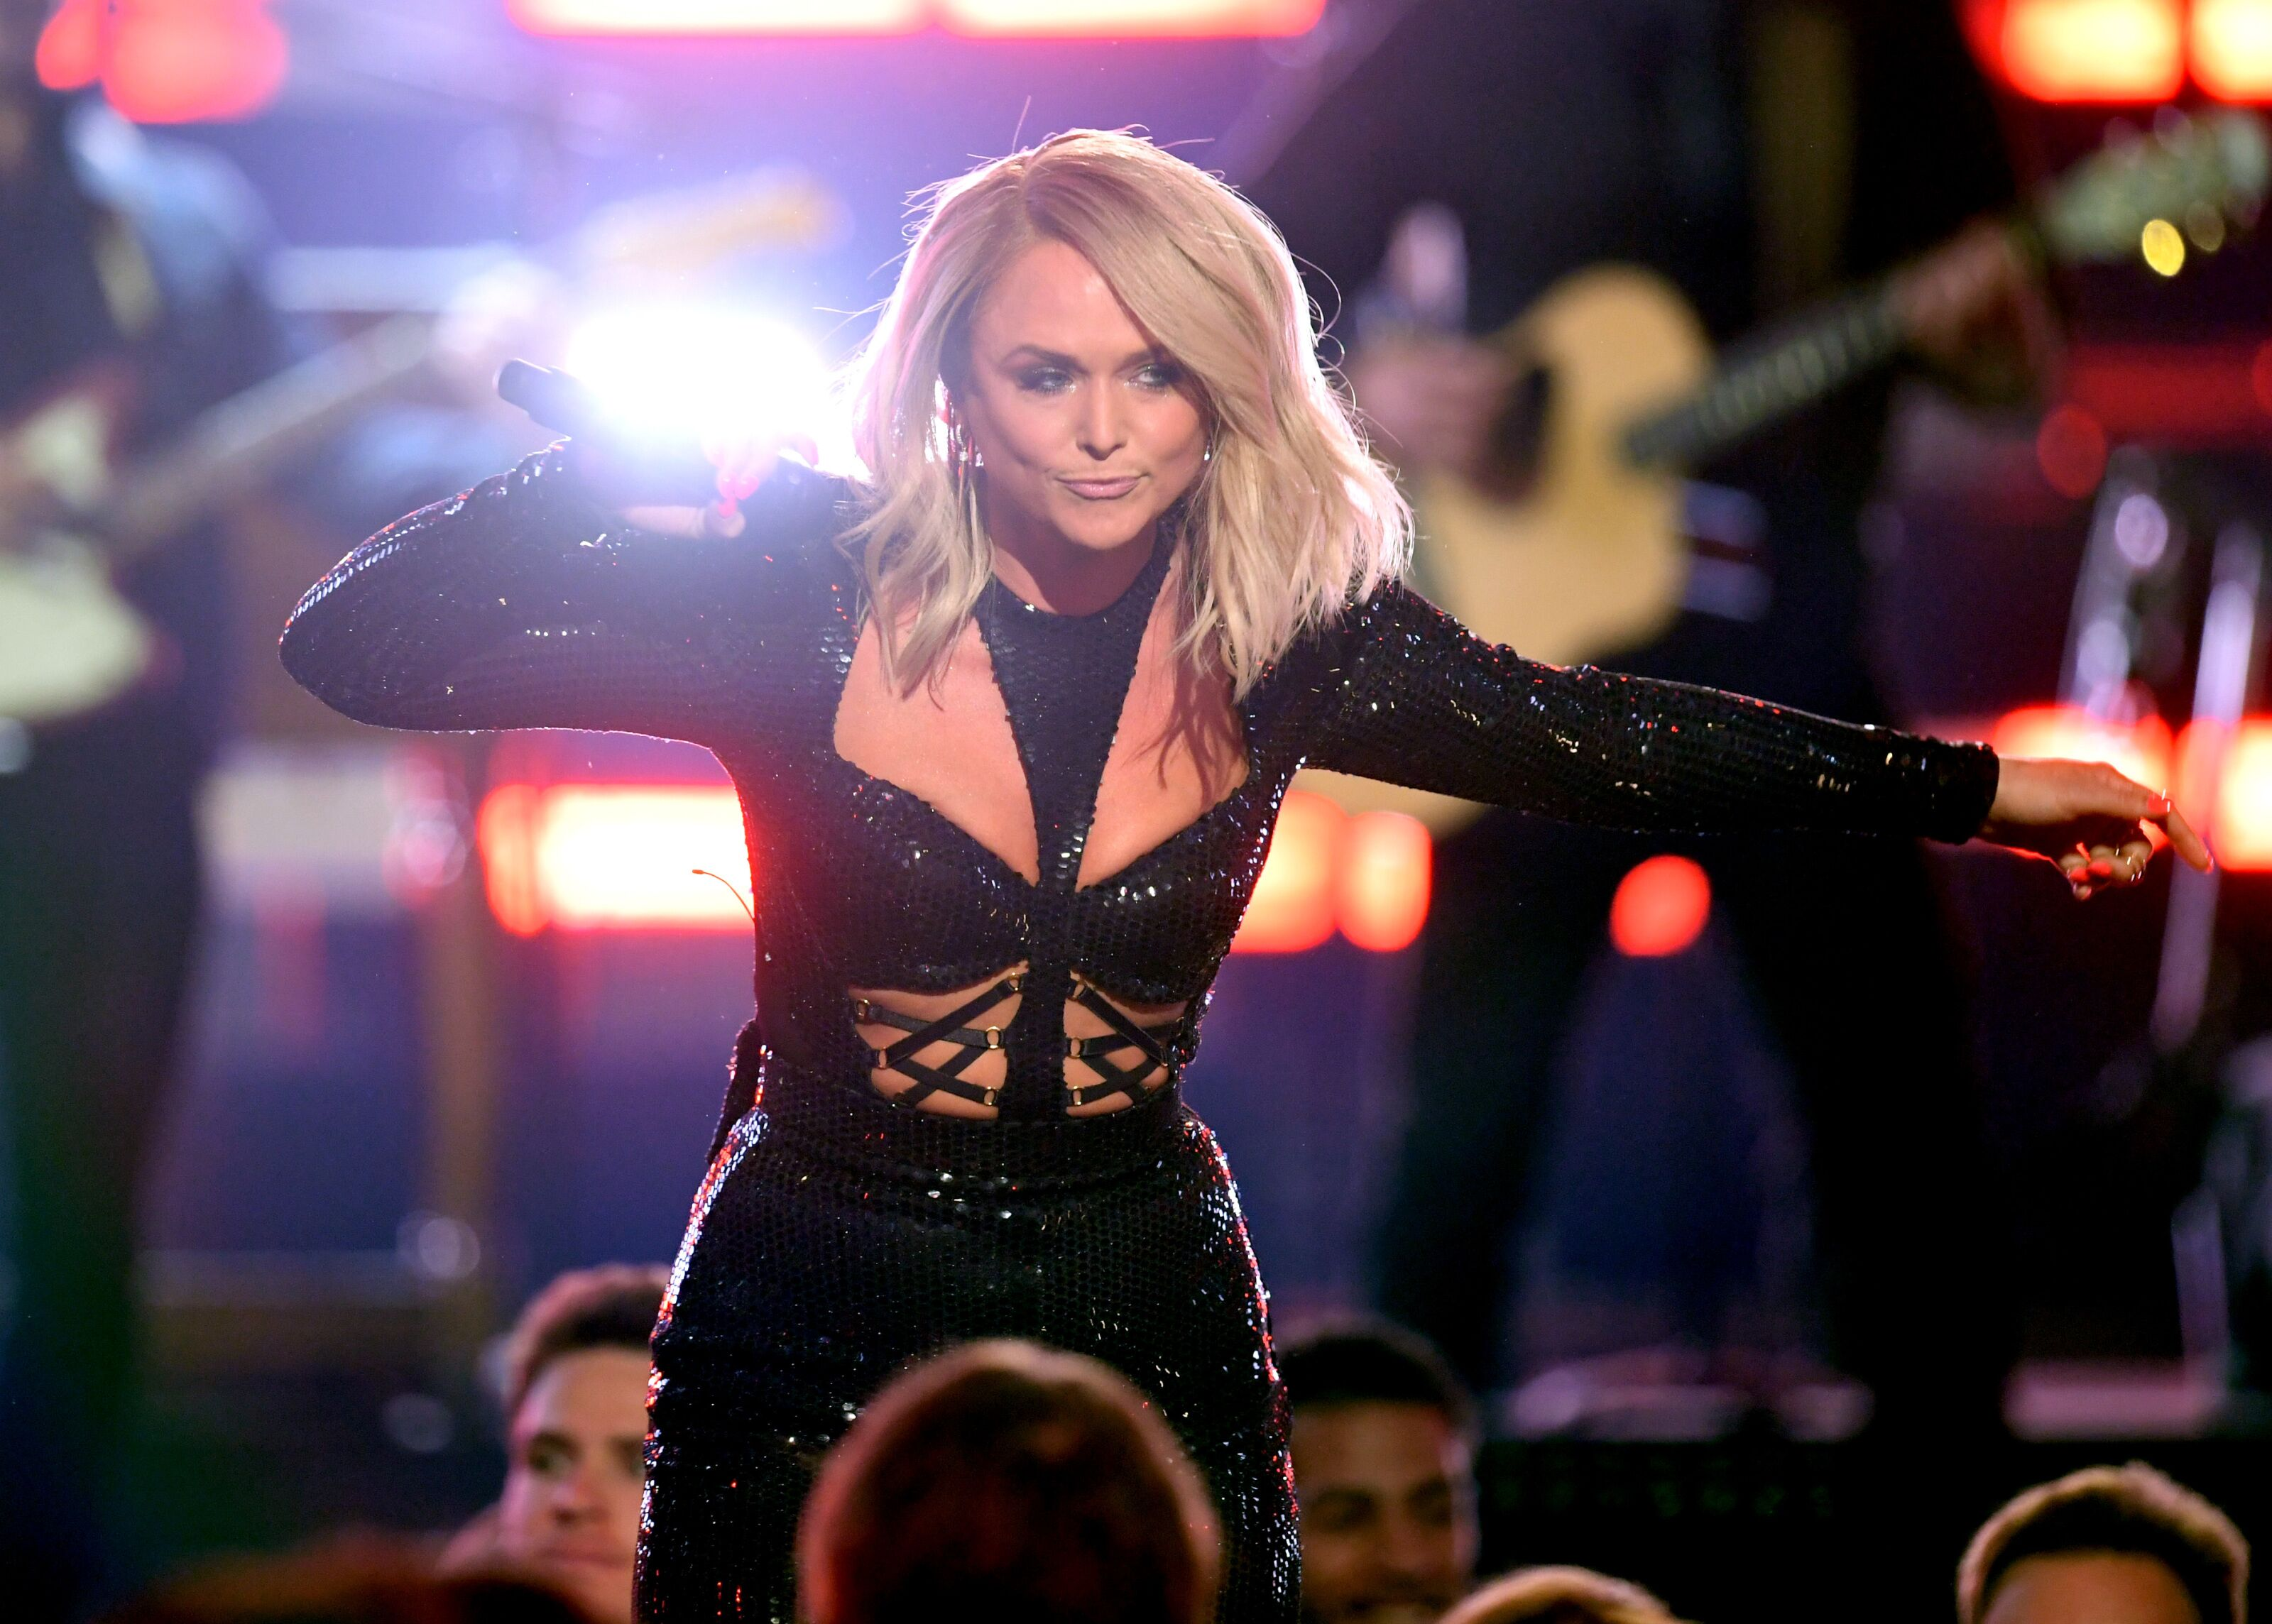 Miranda Lambert shares pictures of adorable puppies that are available for adoption